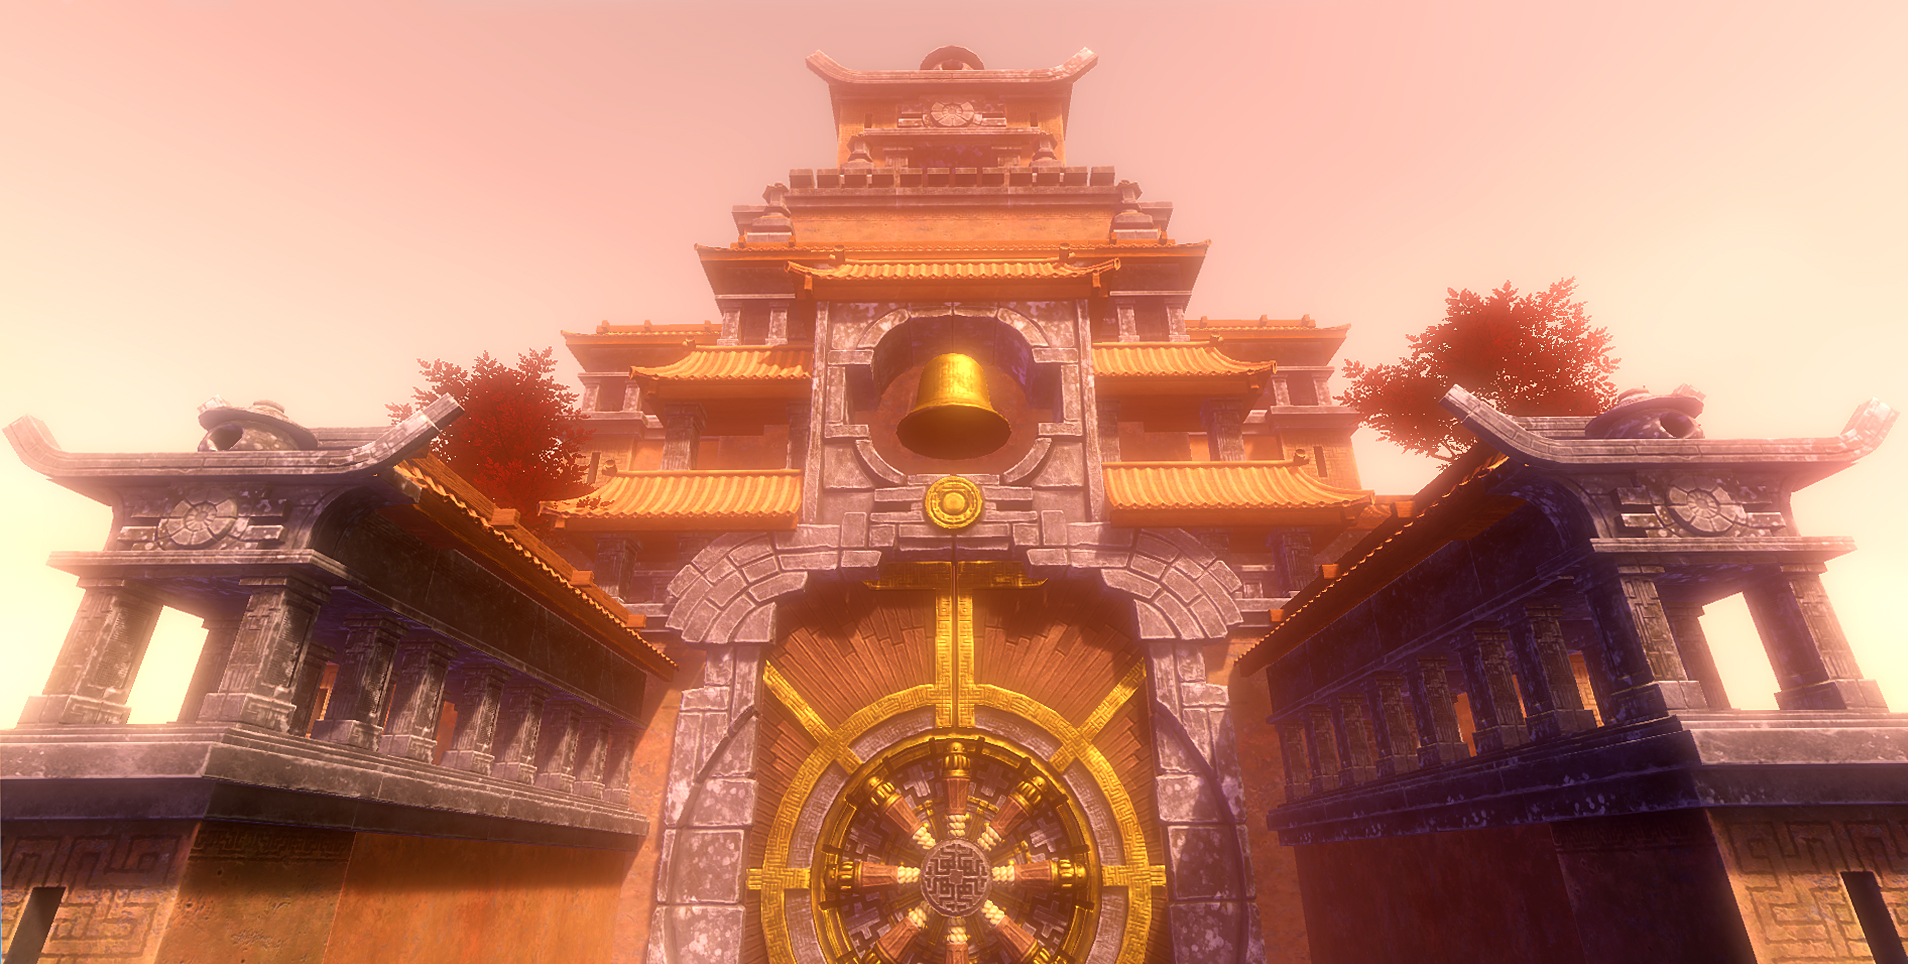 Twilight Path: A new, charming puzzle game for virtual reality